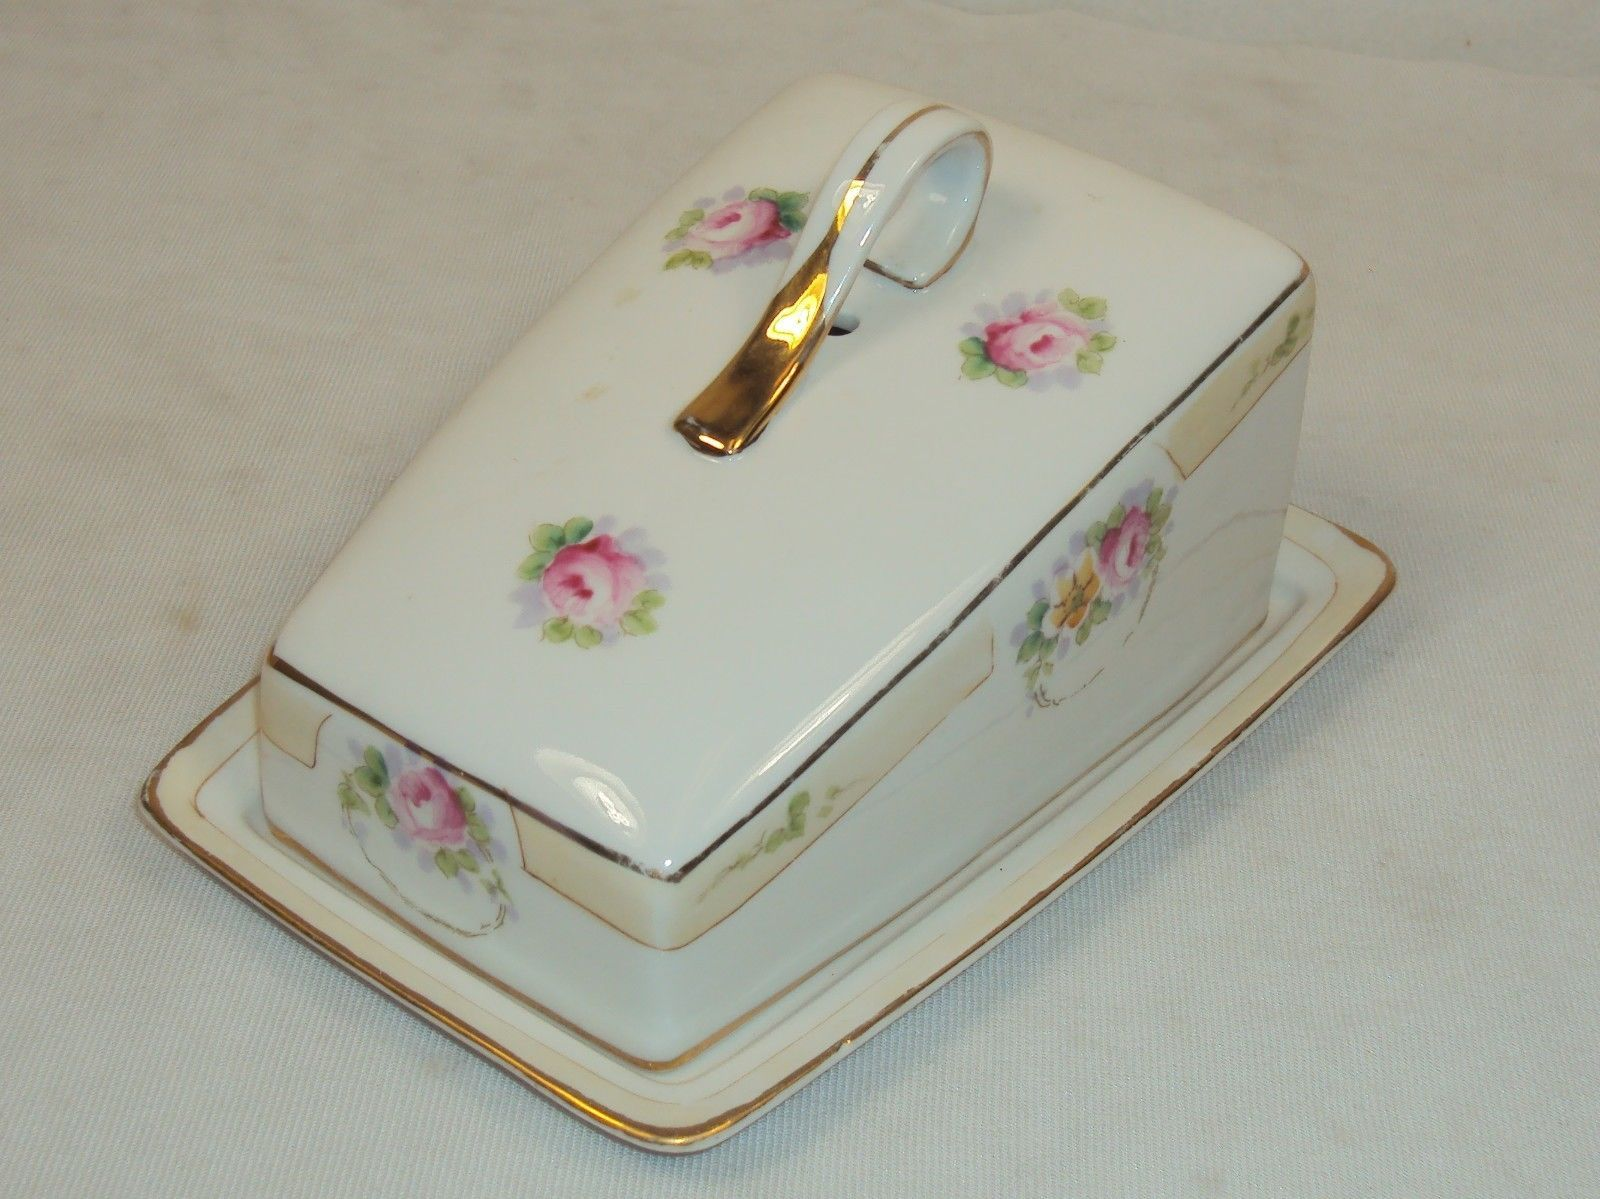 Vintage Nippon Cheese Keeper ~ Hand Painted Floral Design w/Gold Trim